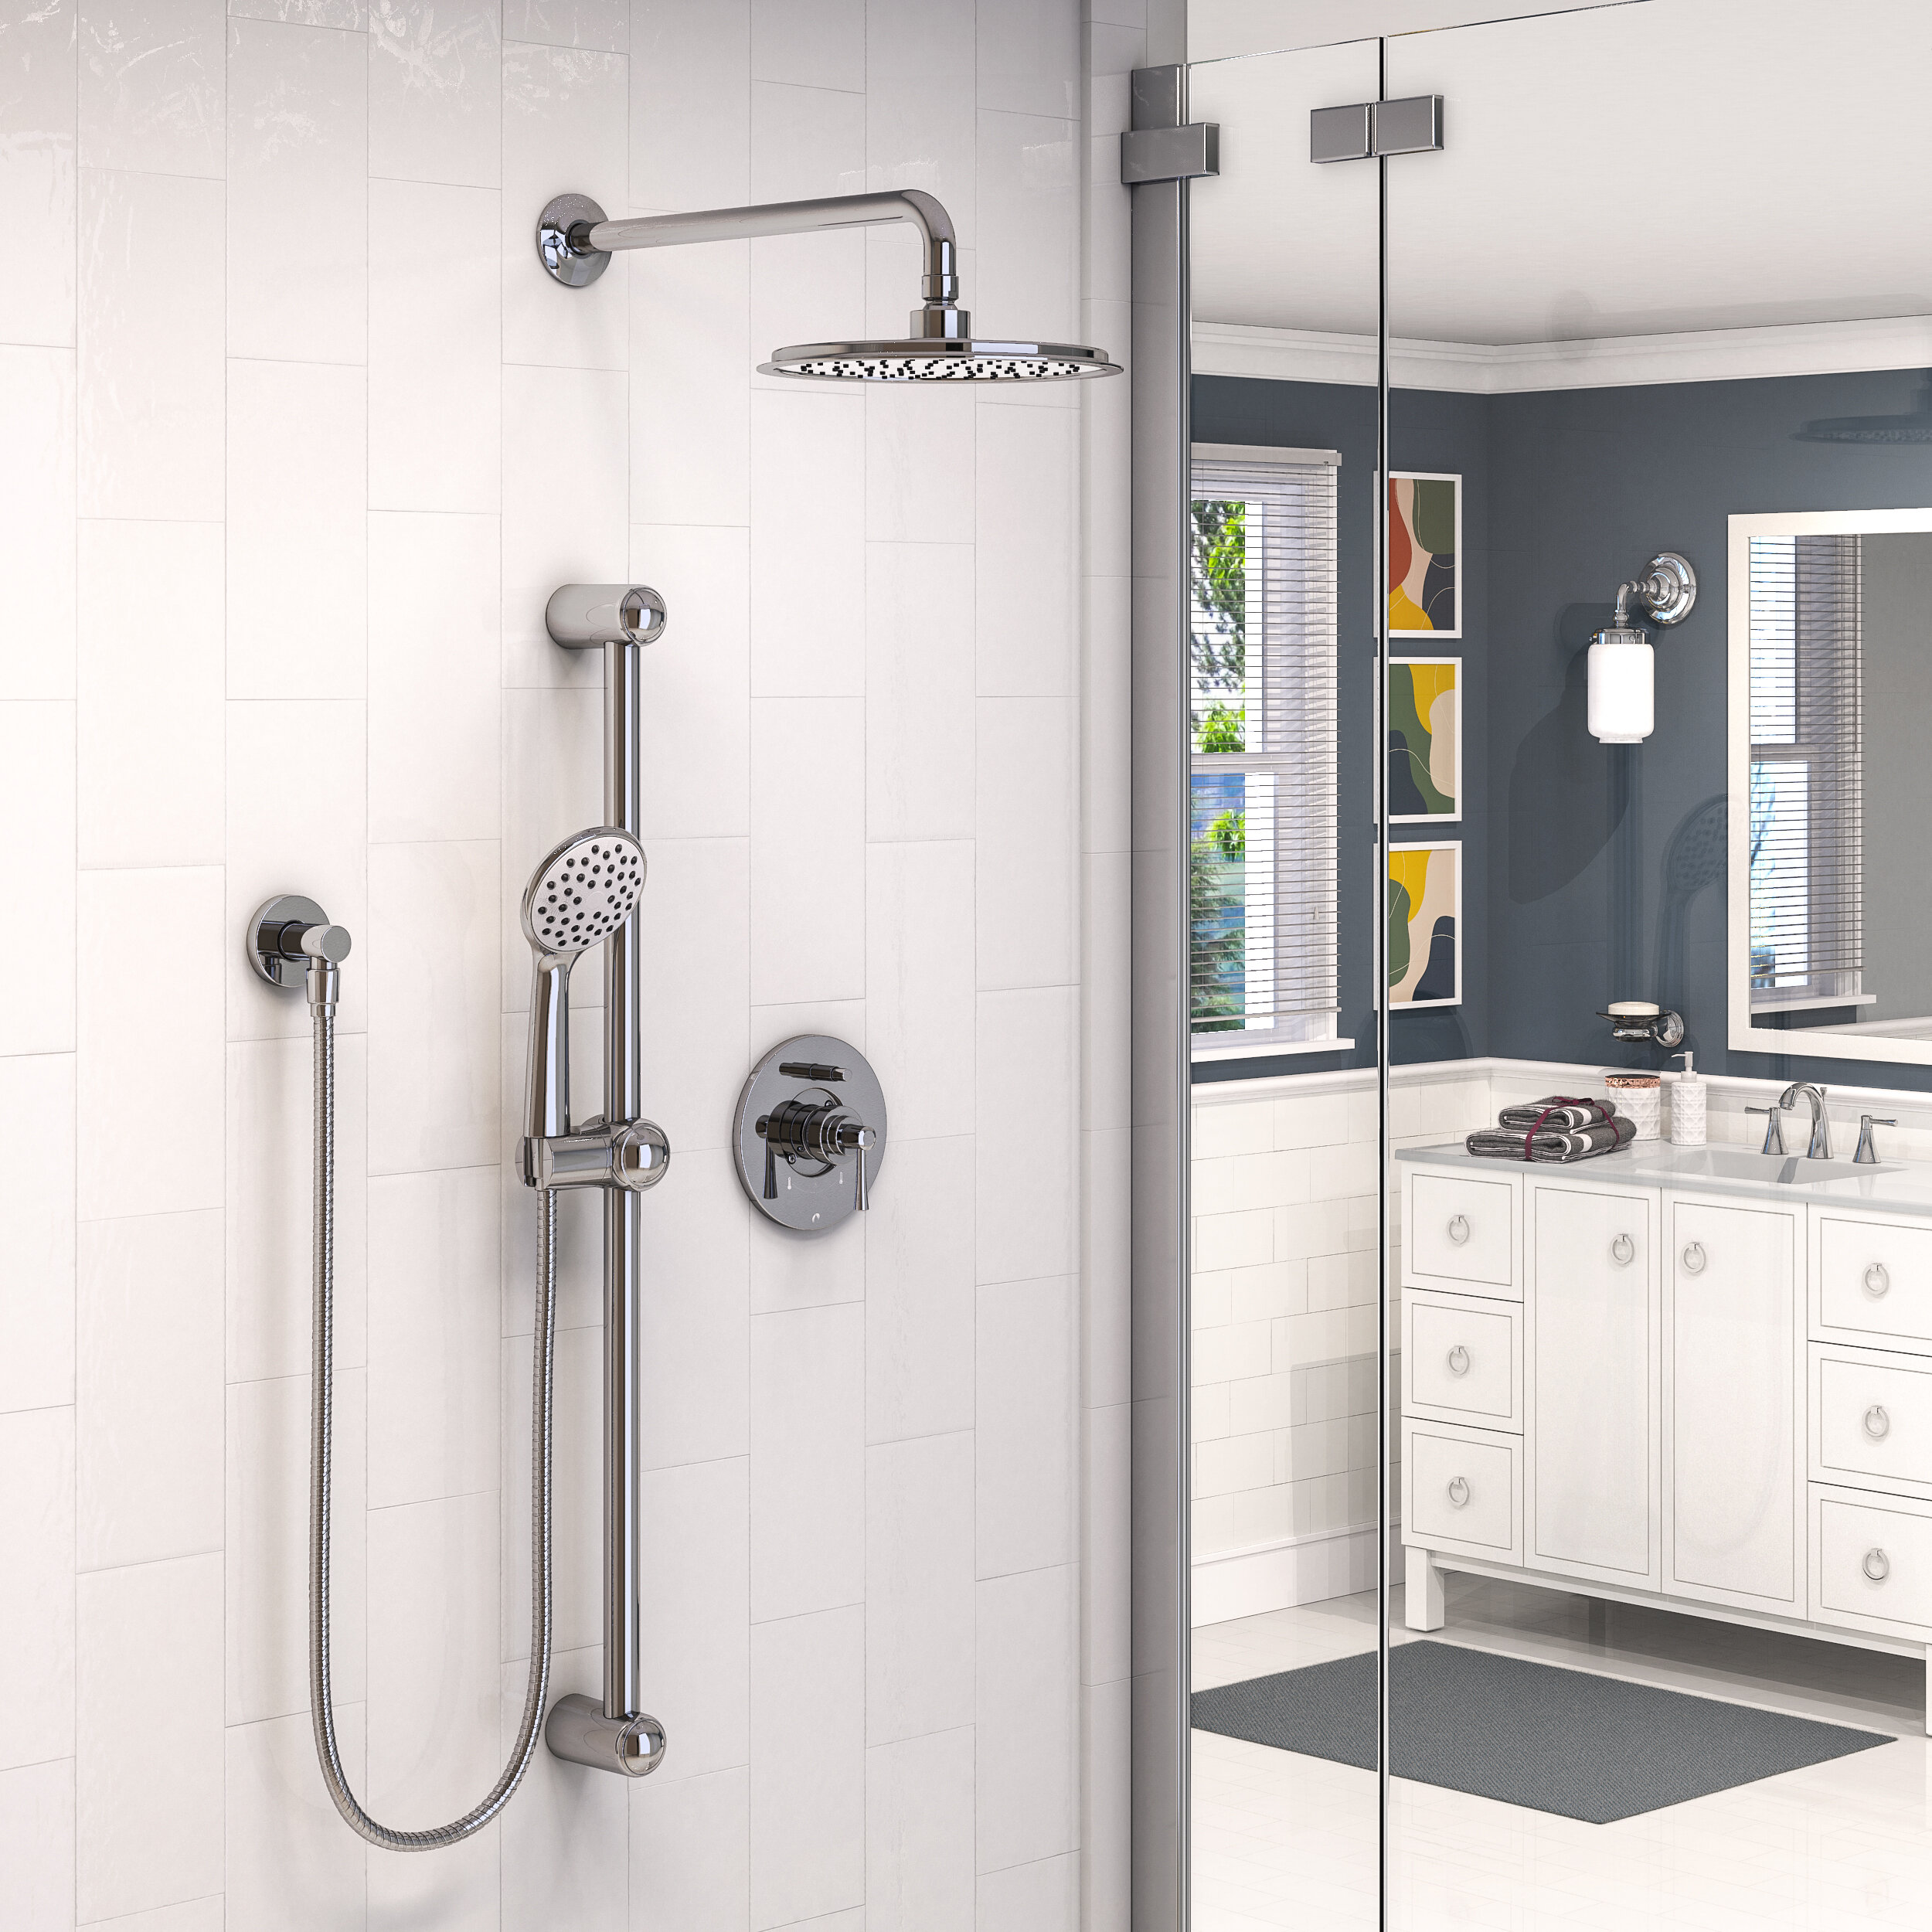 Keeney Manufacturing Company Belanger Pressure Balanced Complete Shower System With Rough In Valve Reviews Wayfair